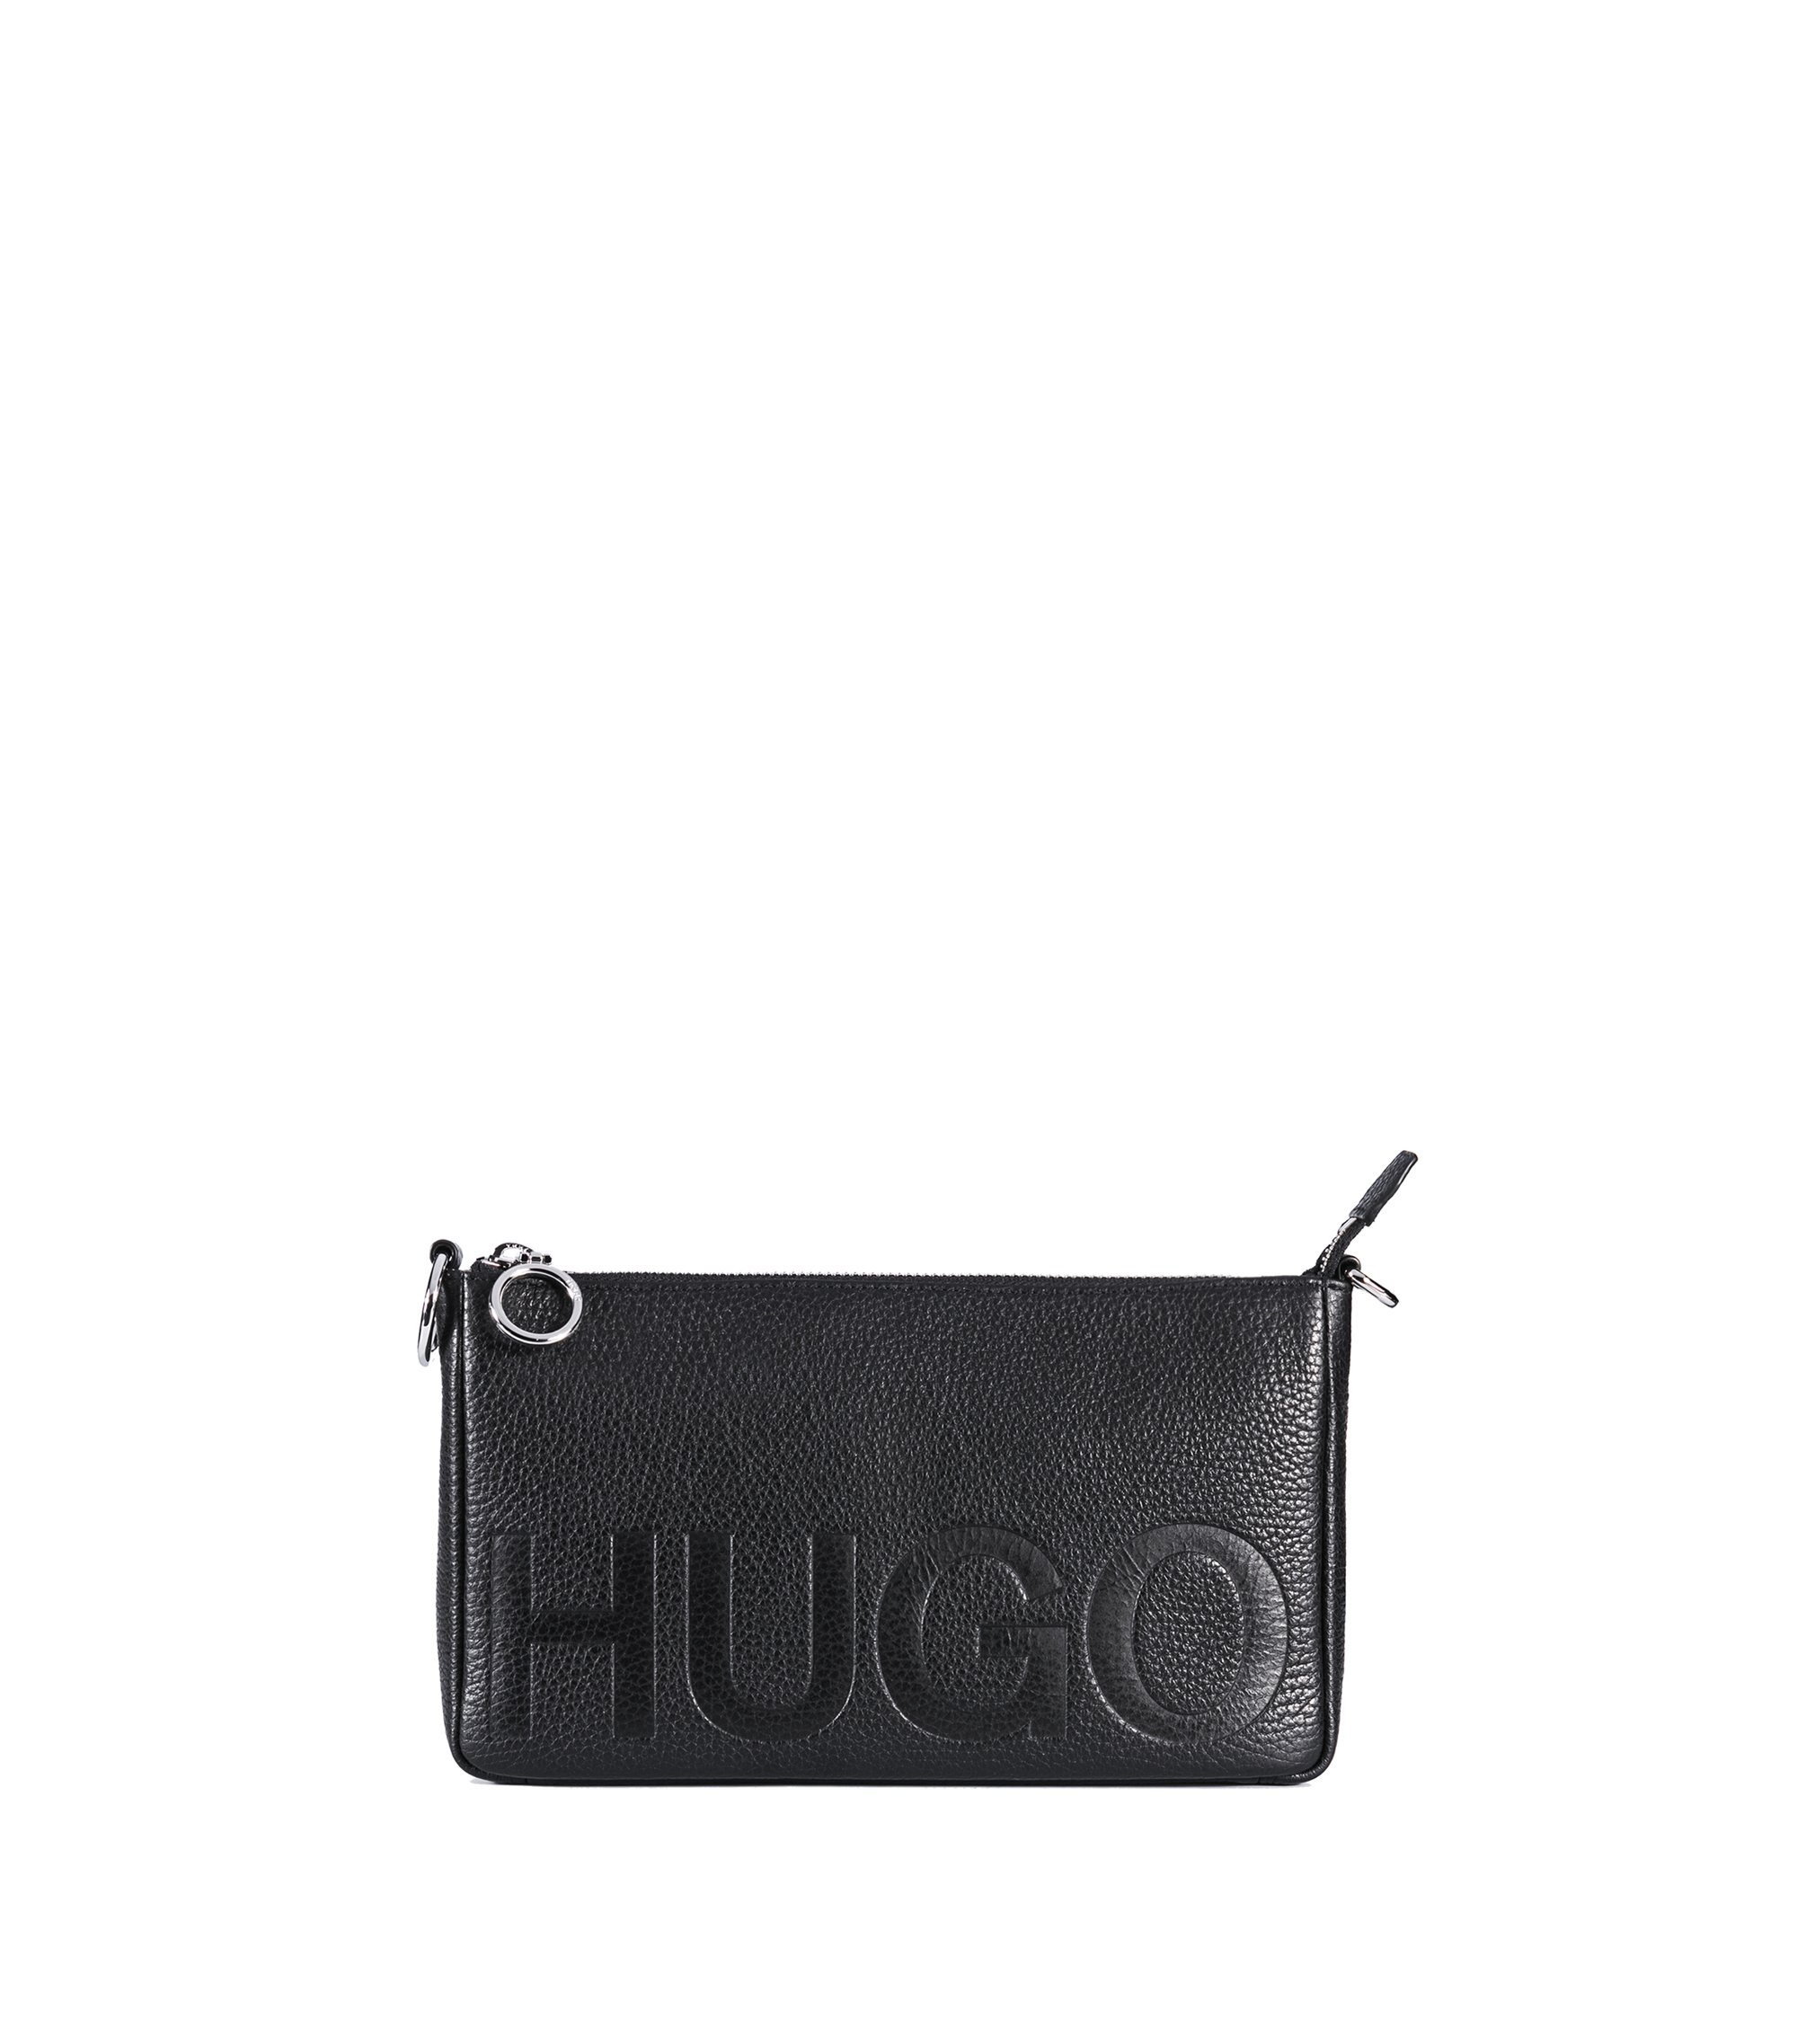 Debossed Leather Bag | Mayfair Mini Bag, Black